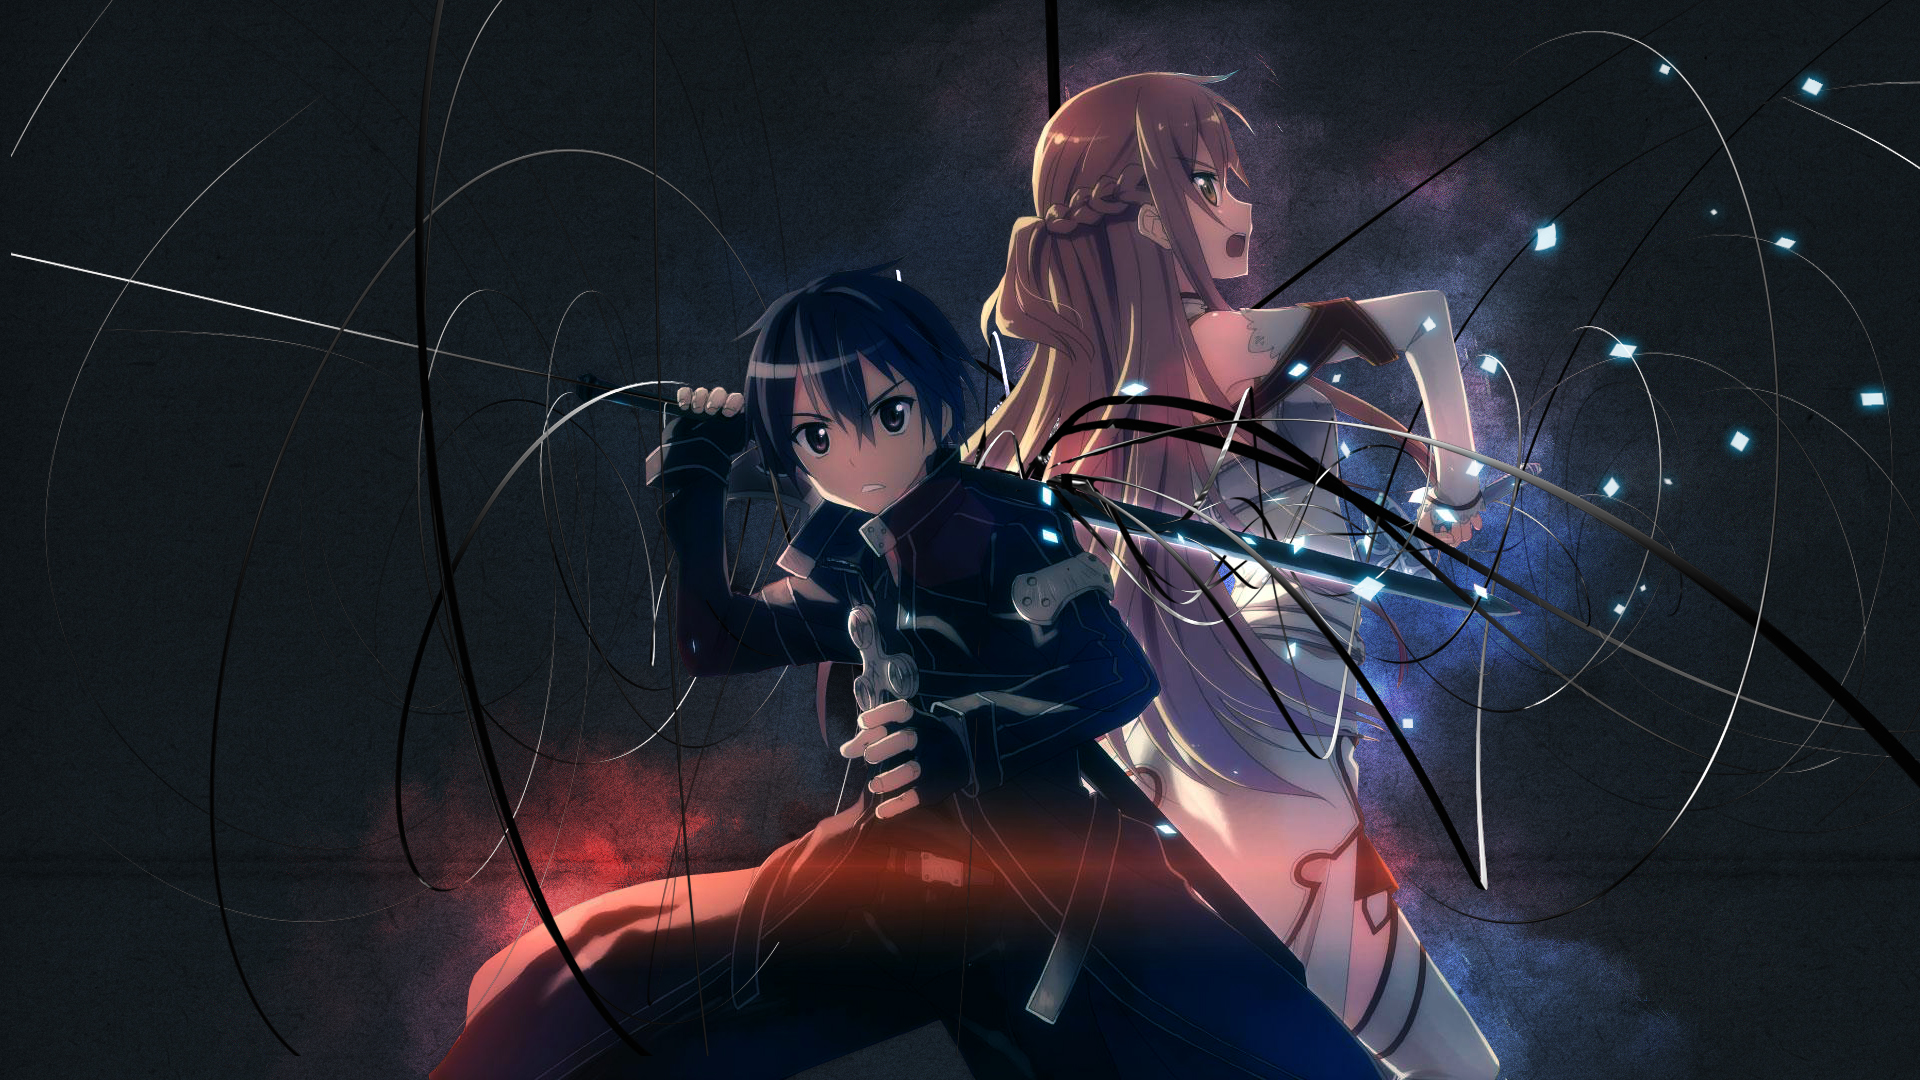 Sword Art Online Computer Wallpapers Desktop Backgrounds 1920x1080 1920x1080